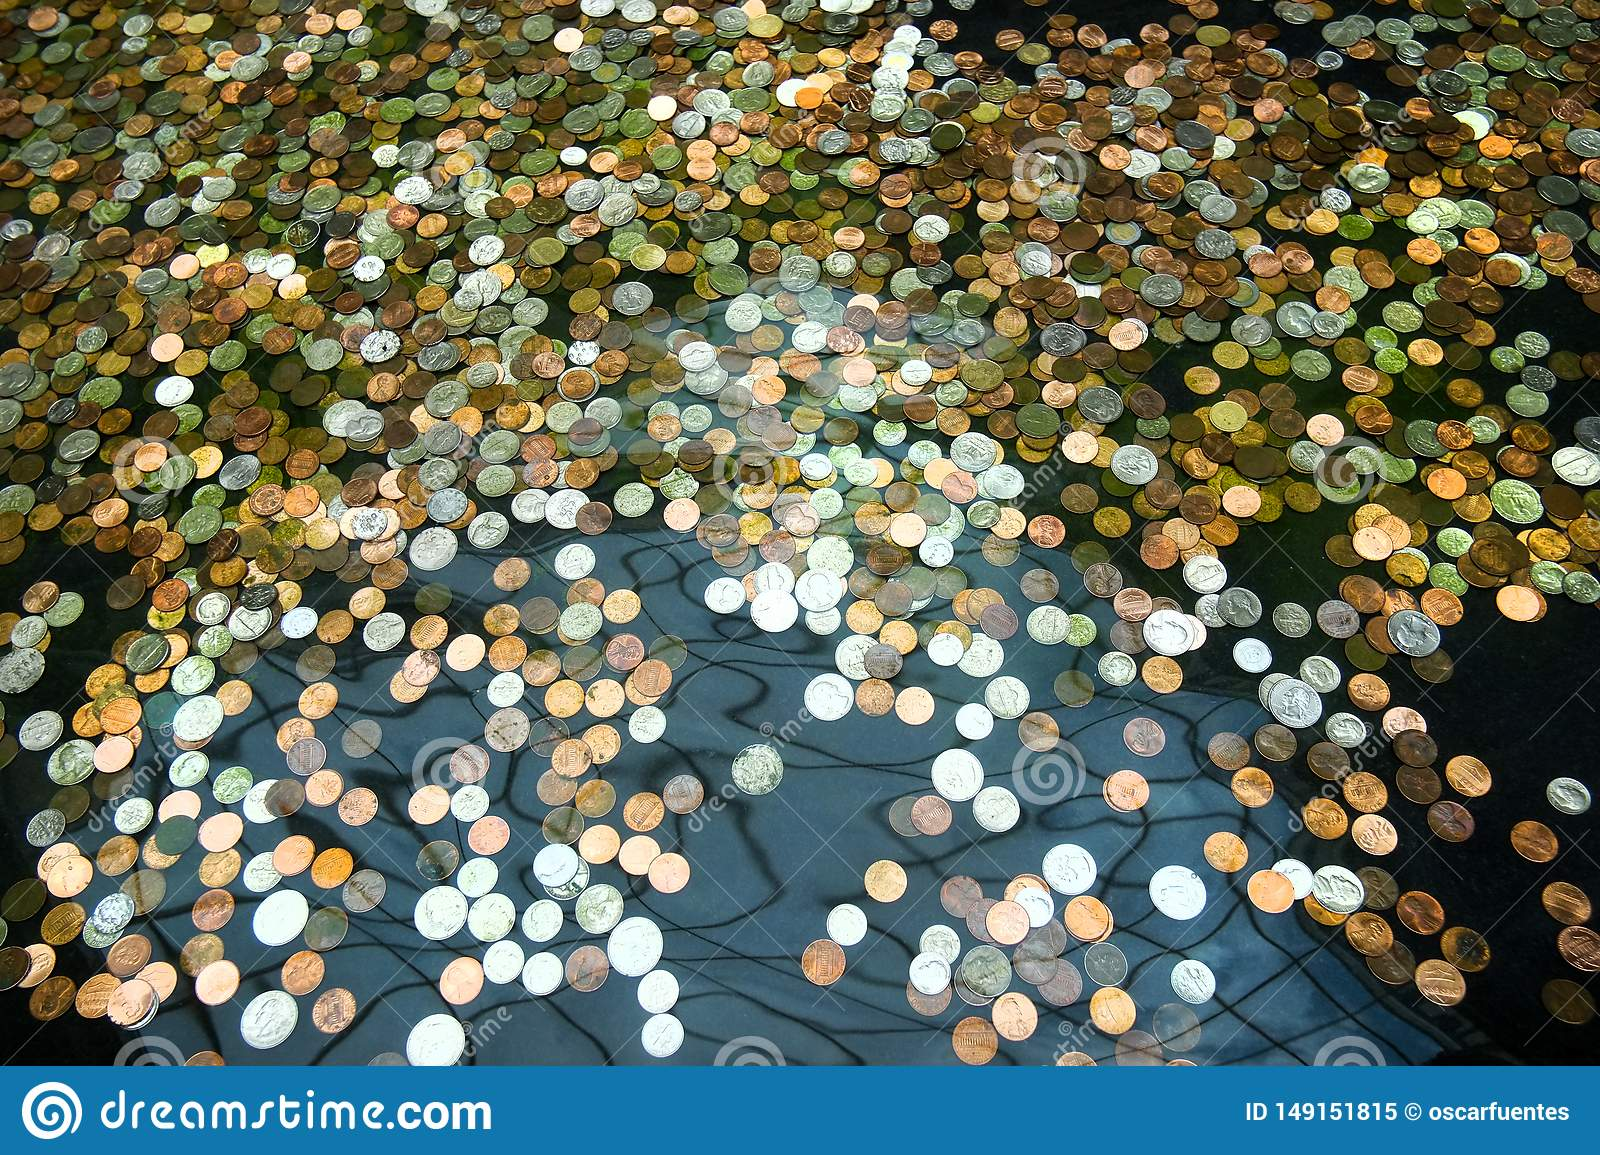 Coins in a fountain, wishes for prosperity